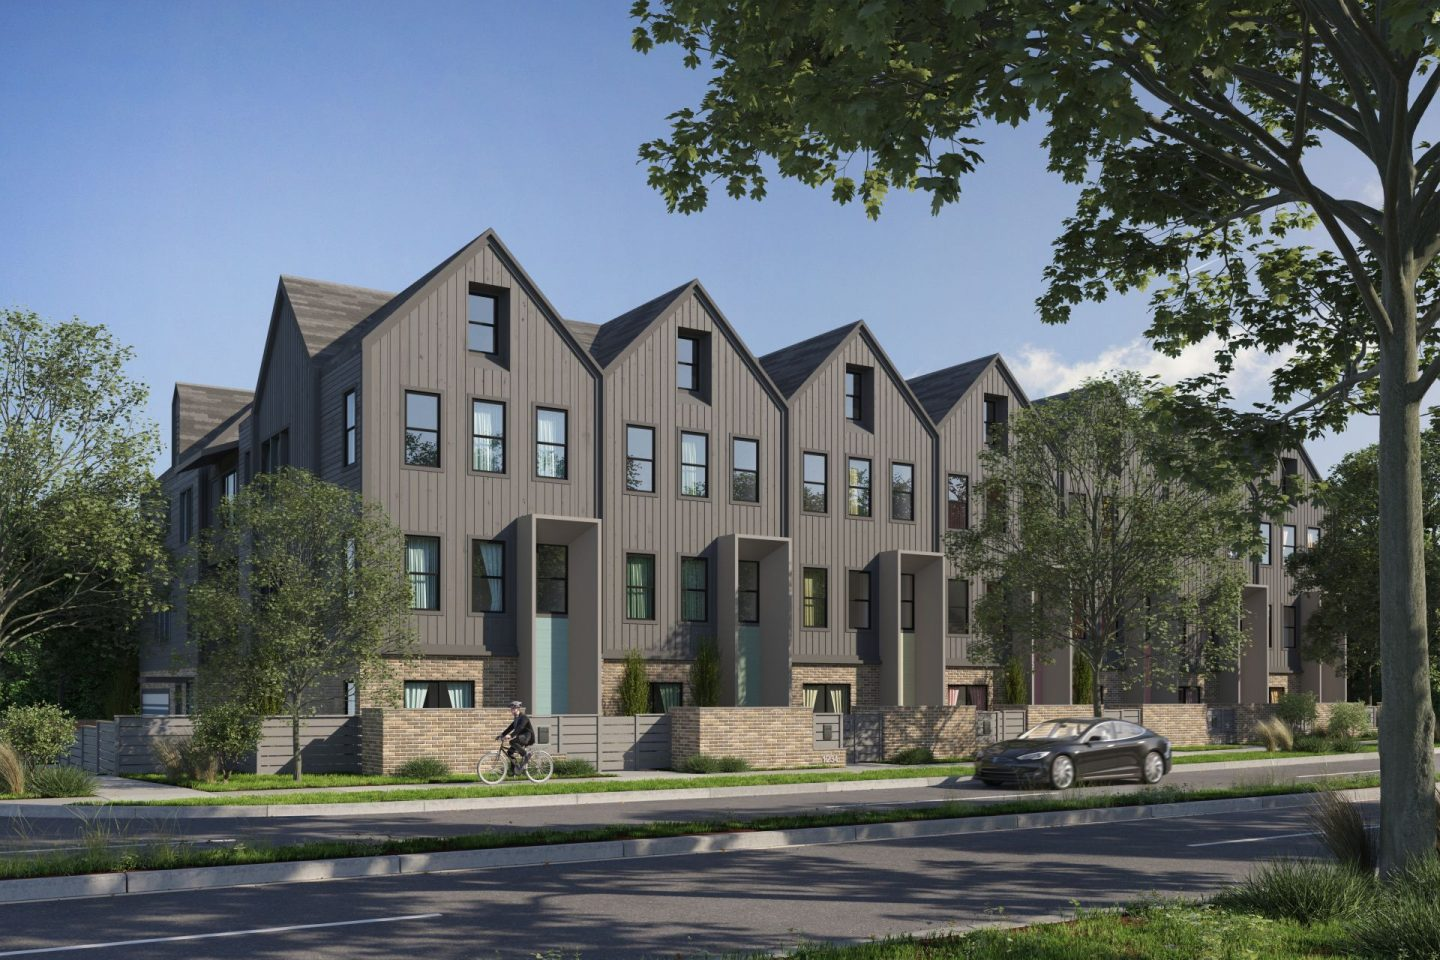 Plaza Row Townhomes - Charlotte, NC - Schwaiger Realty Group